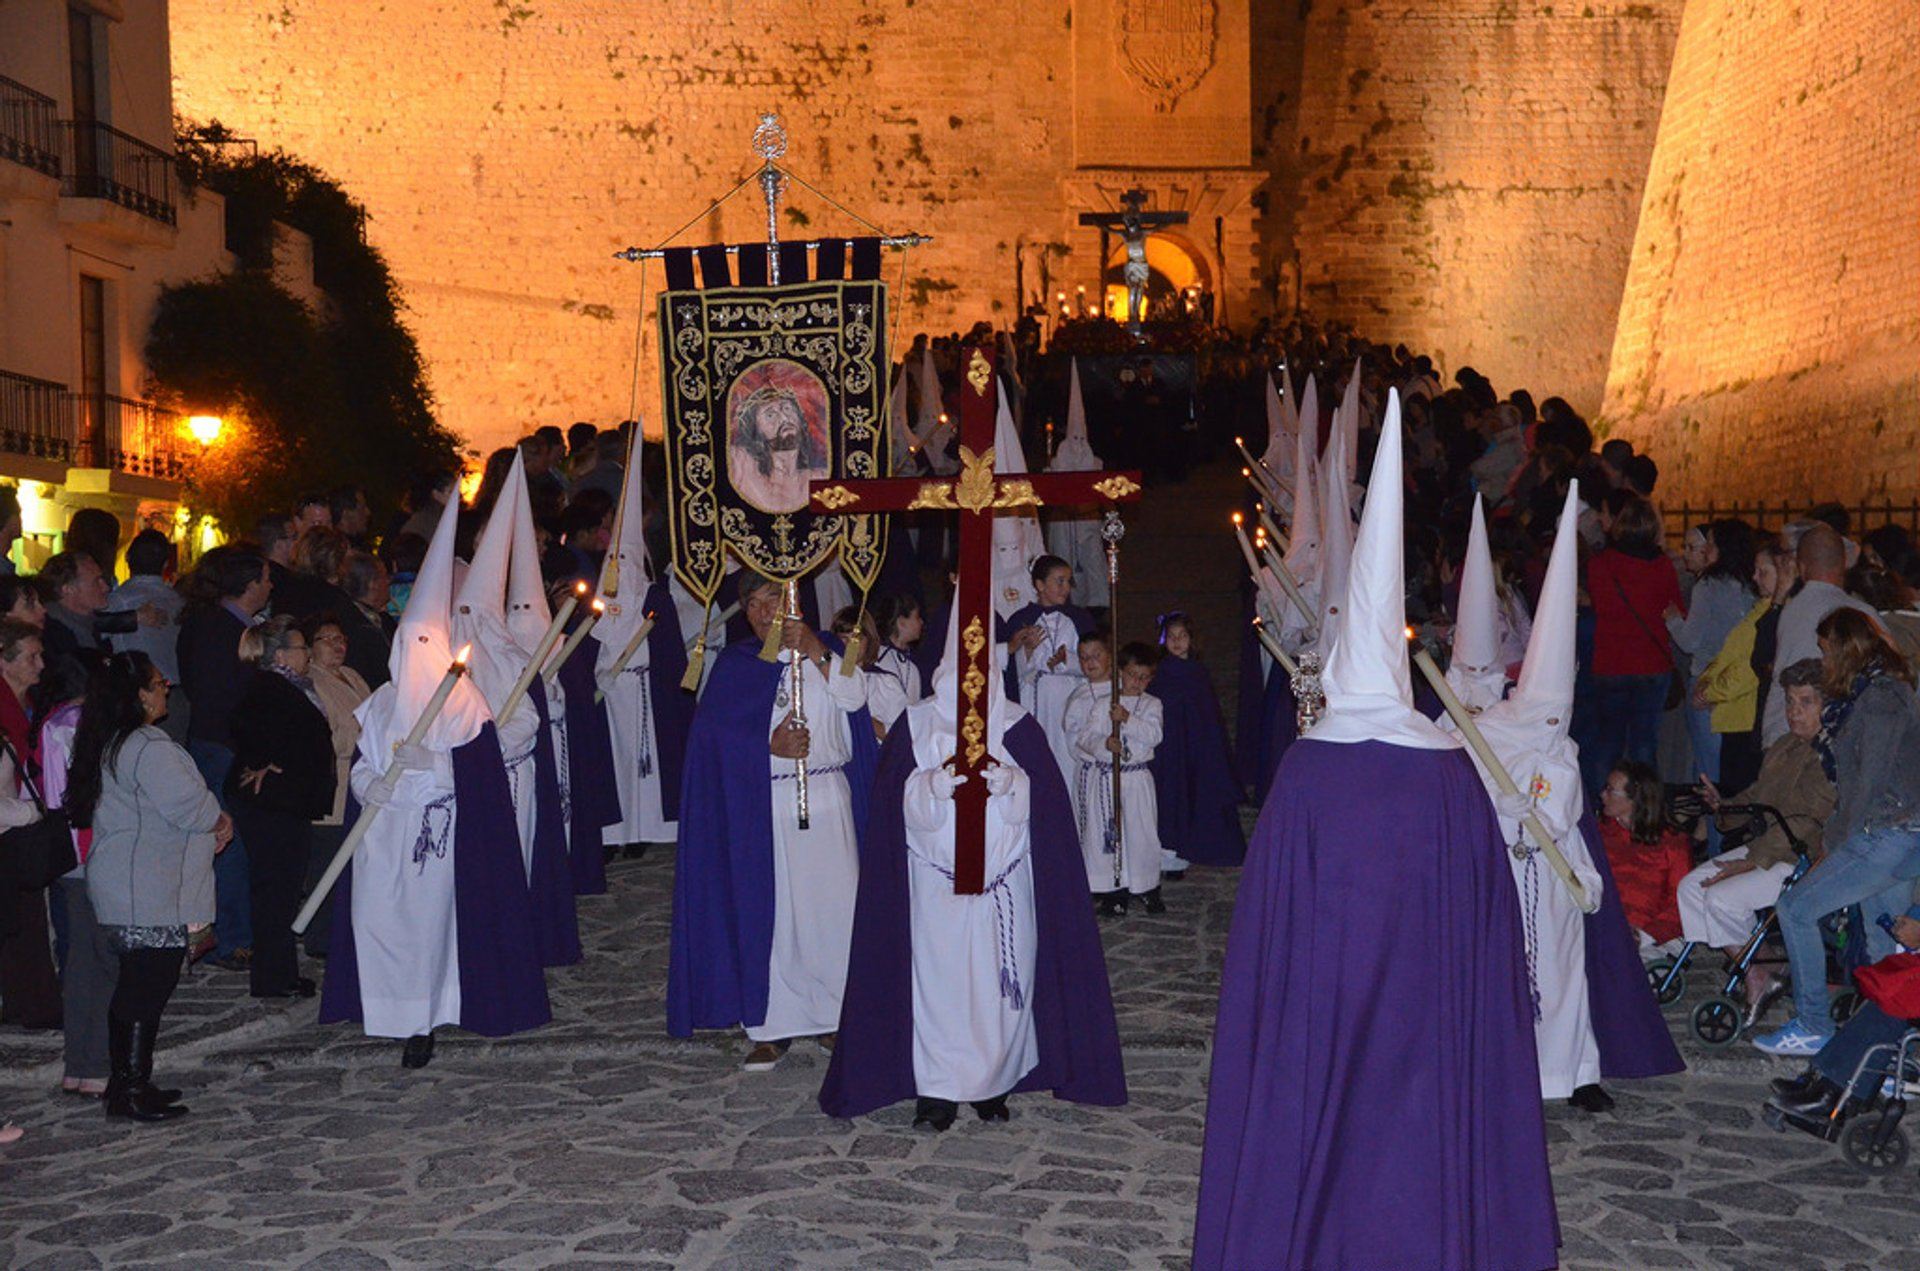 Semana Santa (Holy Week) & Easter in Ibiza - Best Season 2020